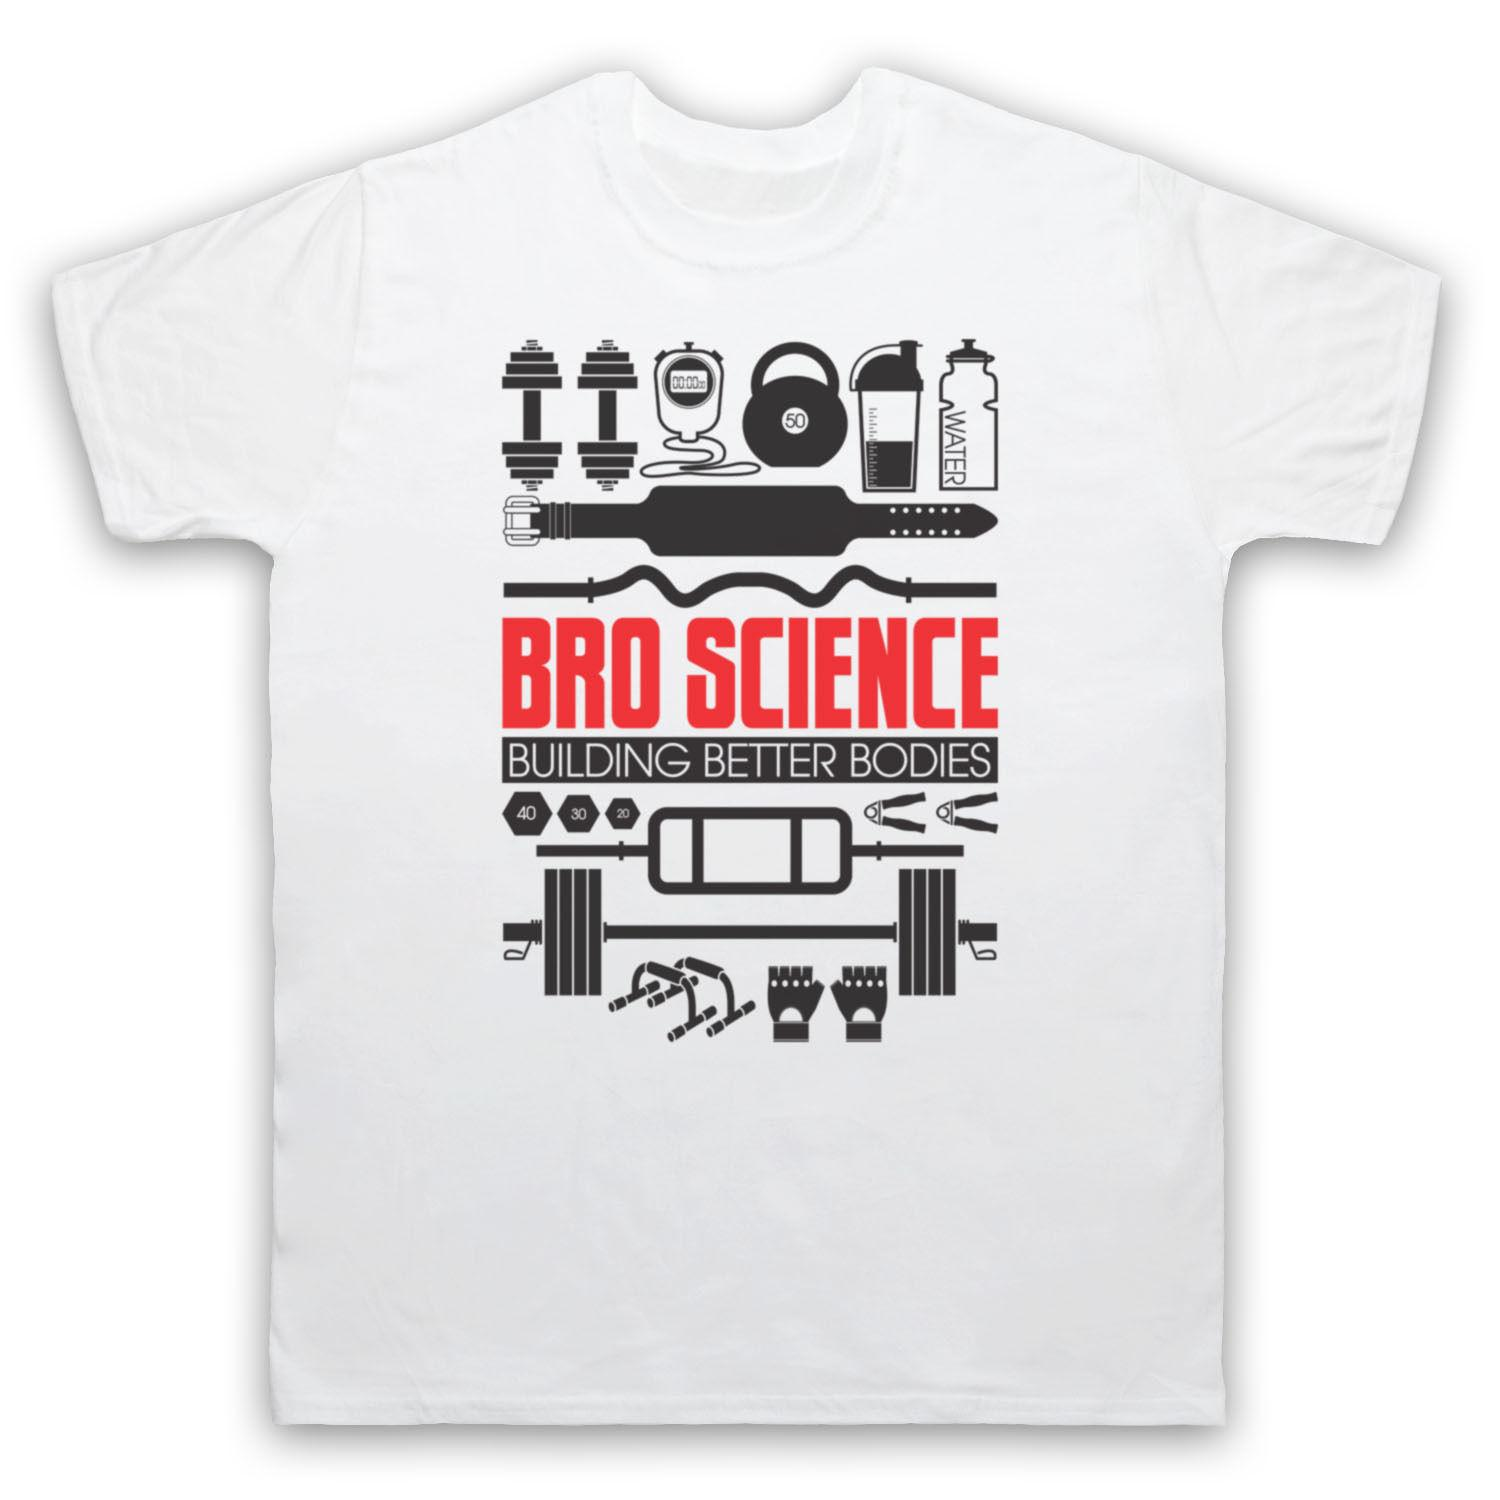 Bro Science Fitness Bodybuilding Training Broscience T Shirt Mens La s & Kids Buy A T Shirt The Coolest T Shirts From Freshrags $11 01 Dhgate